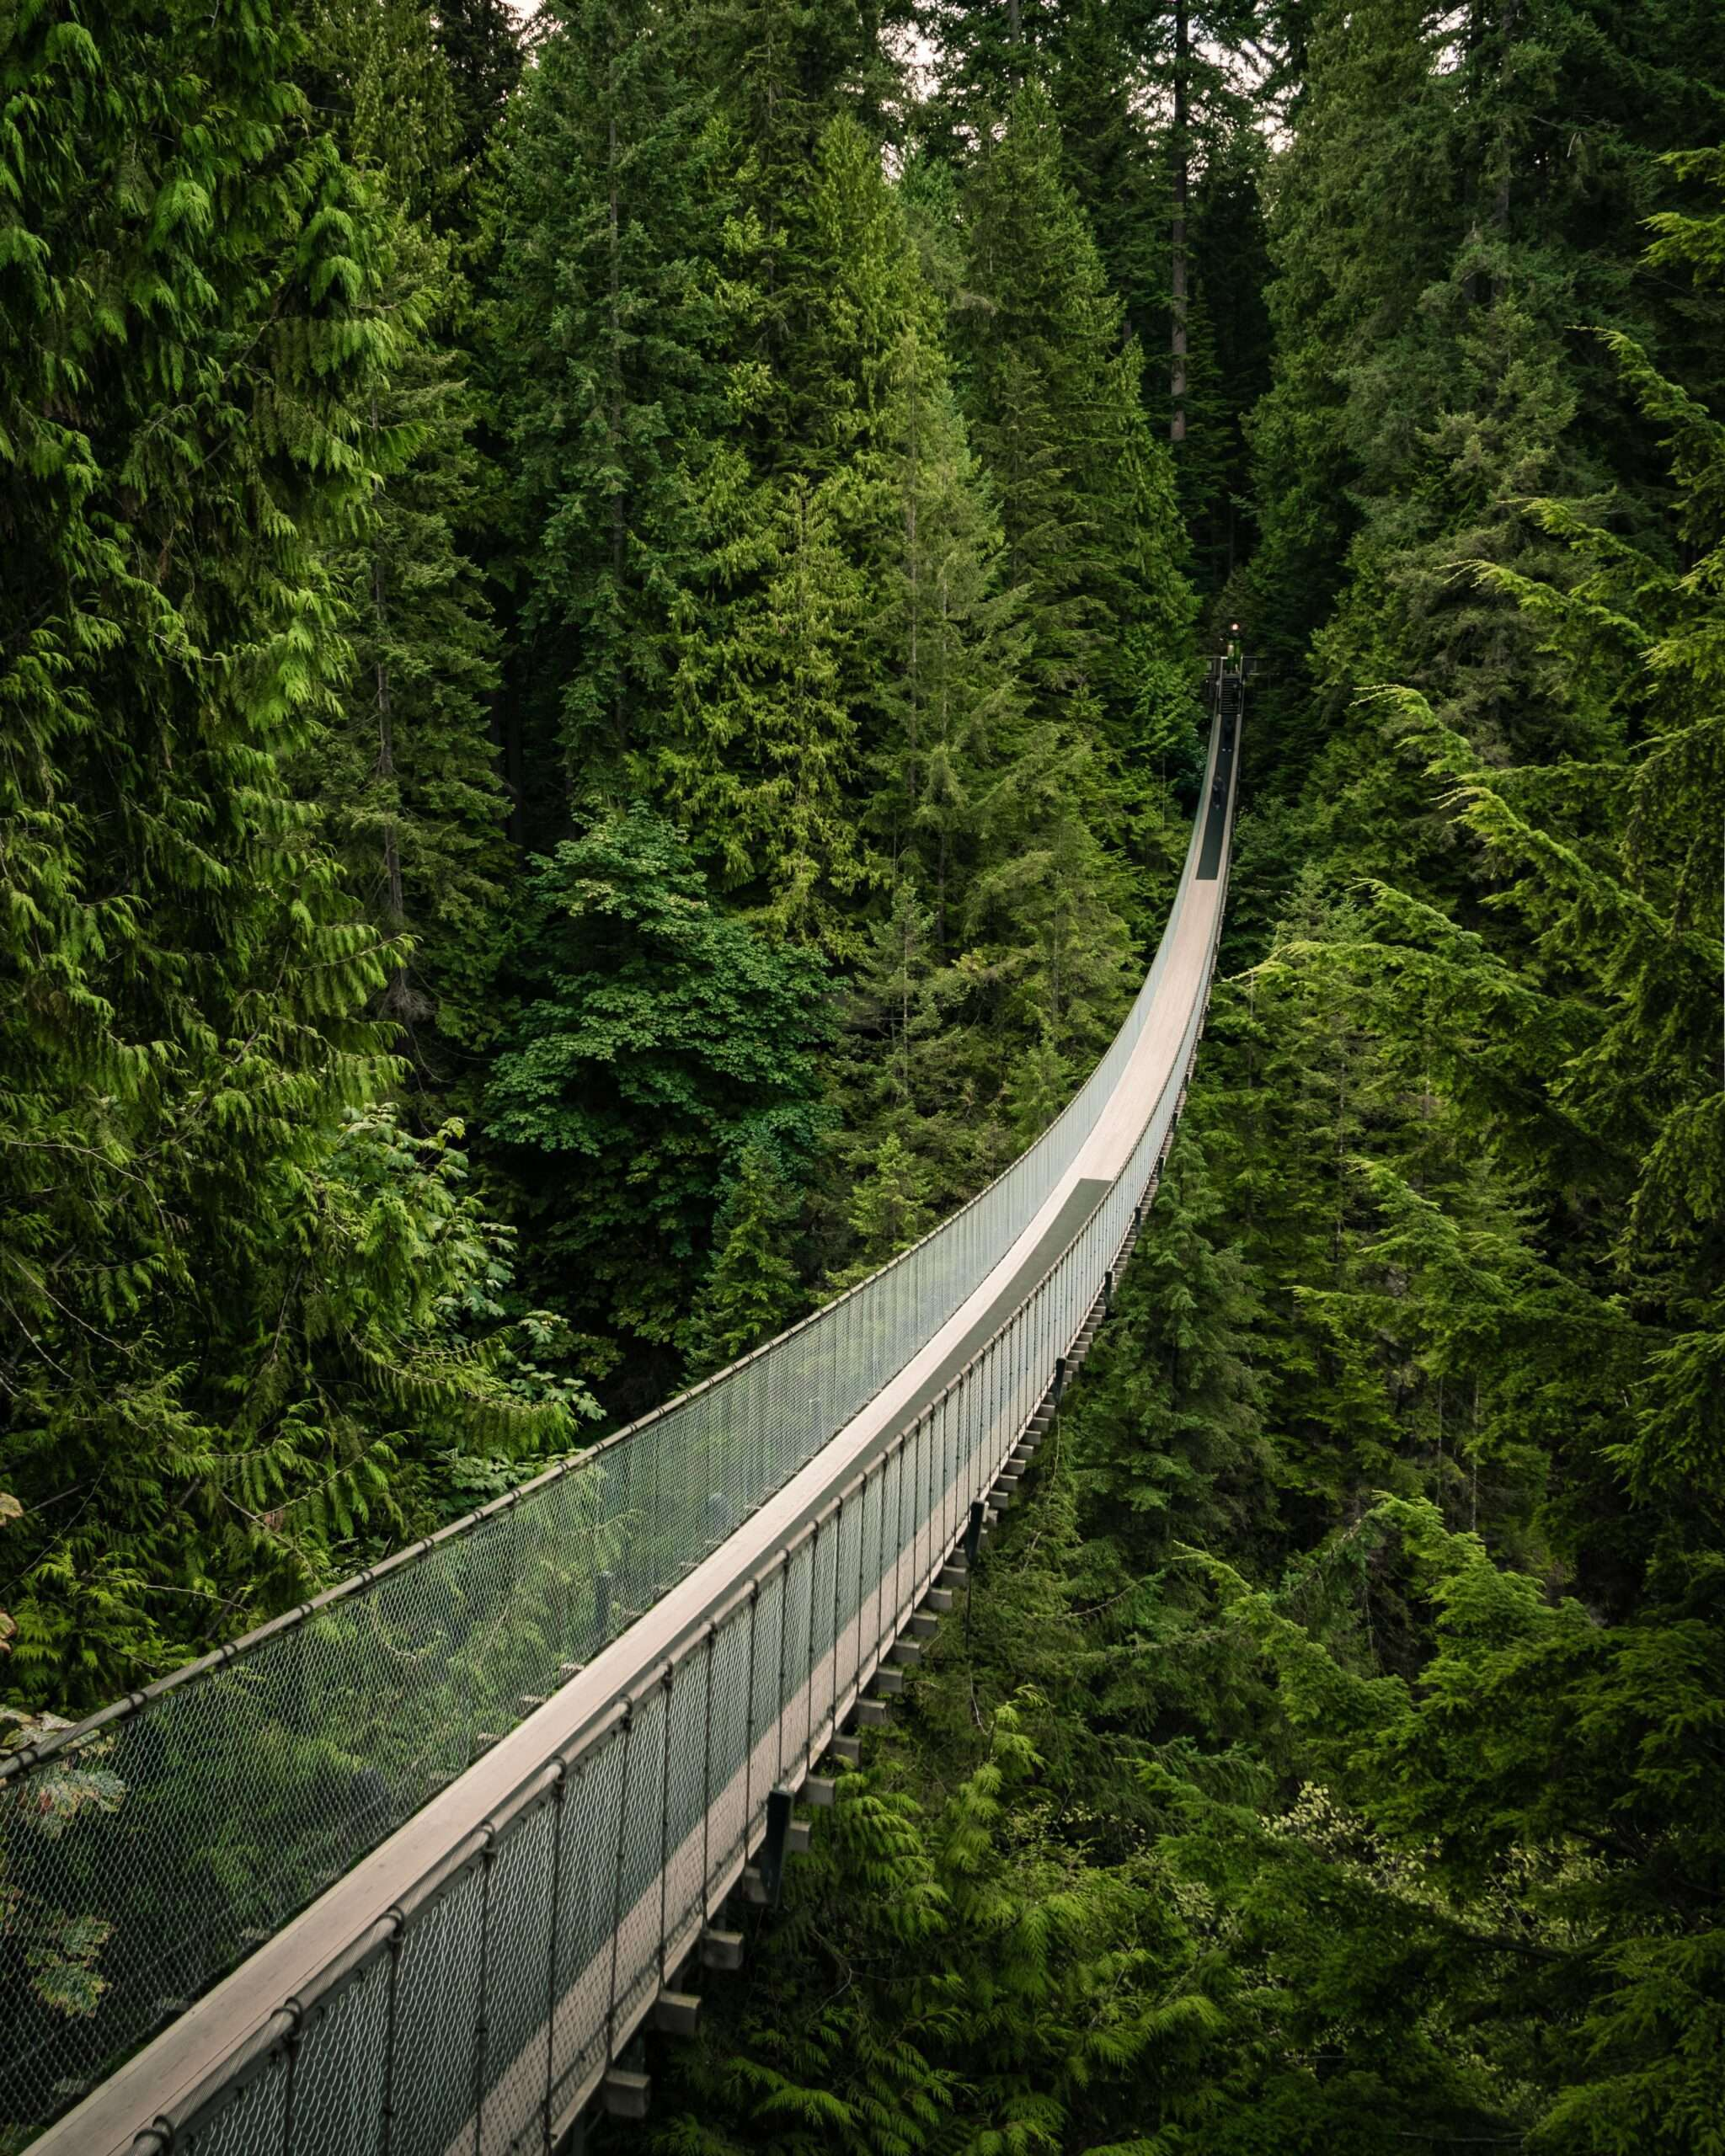 Capilano suspension bridge above thick forest in Vancouver